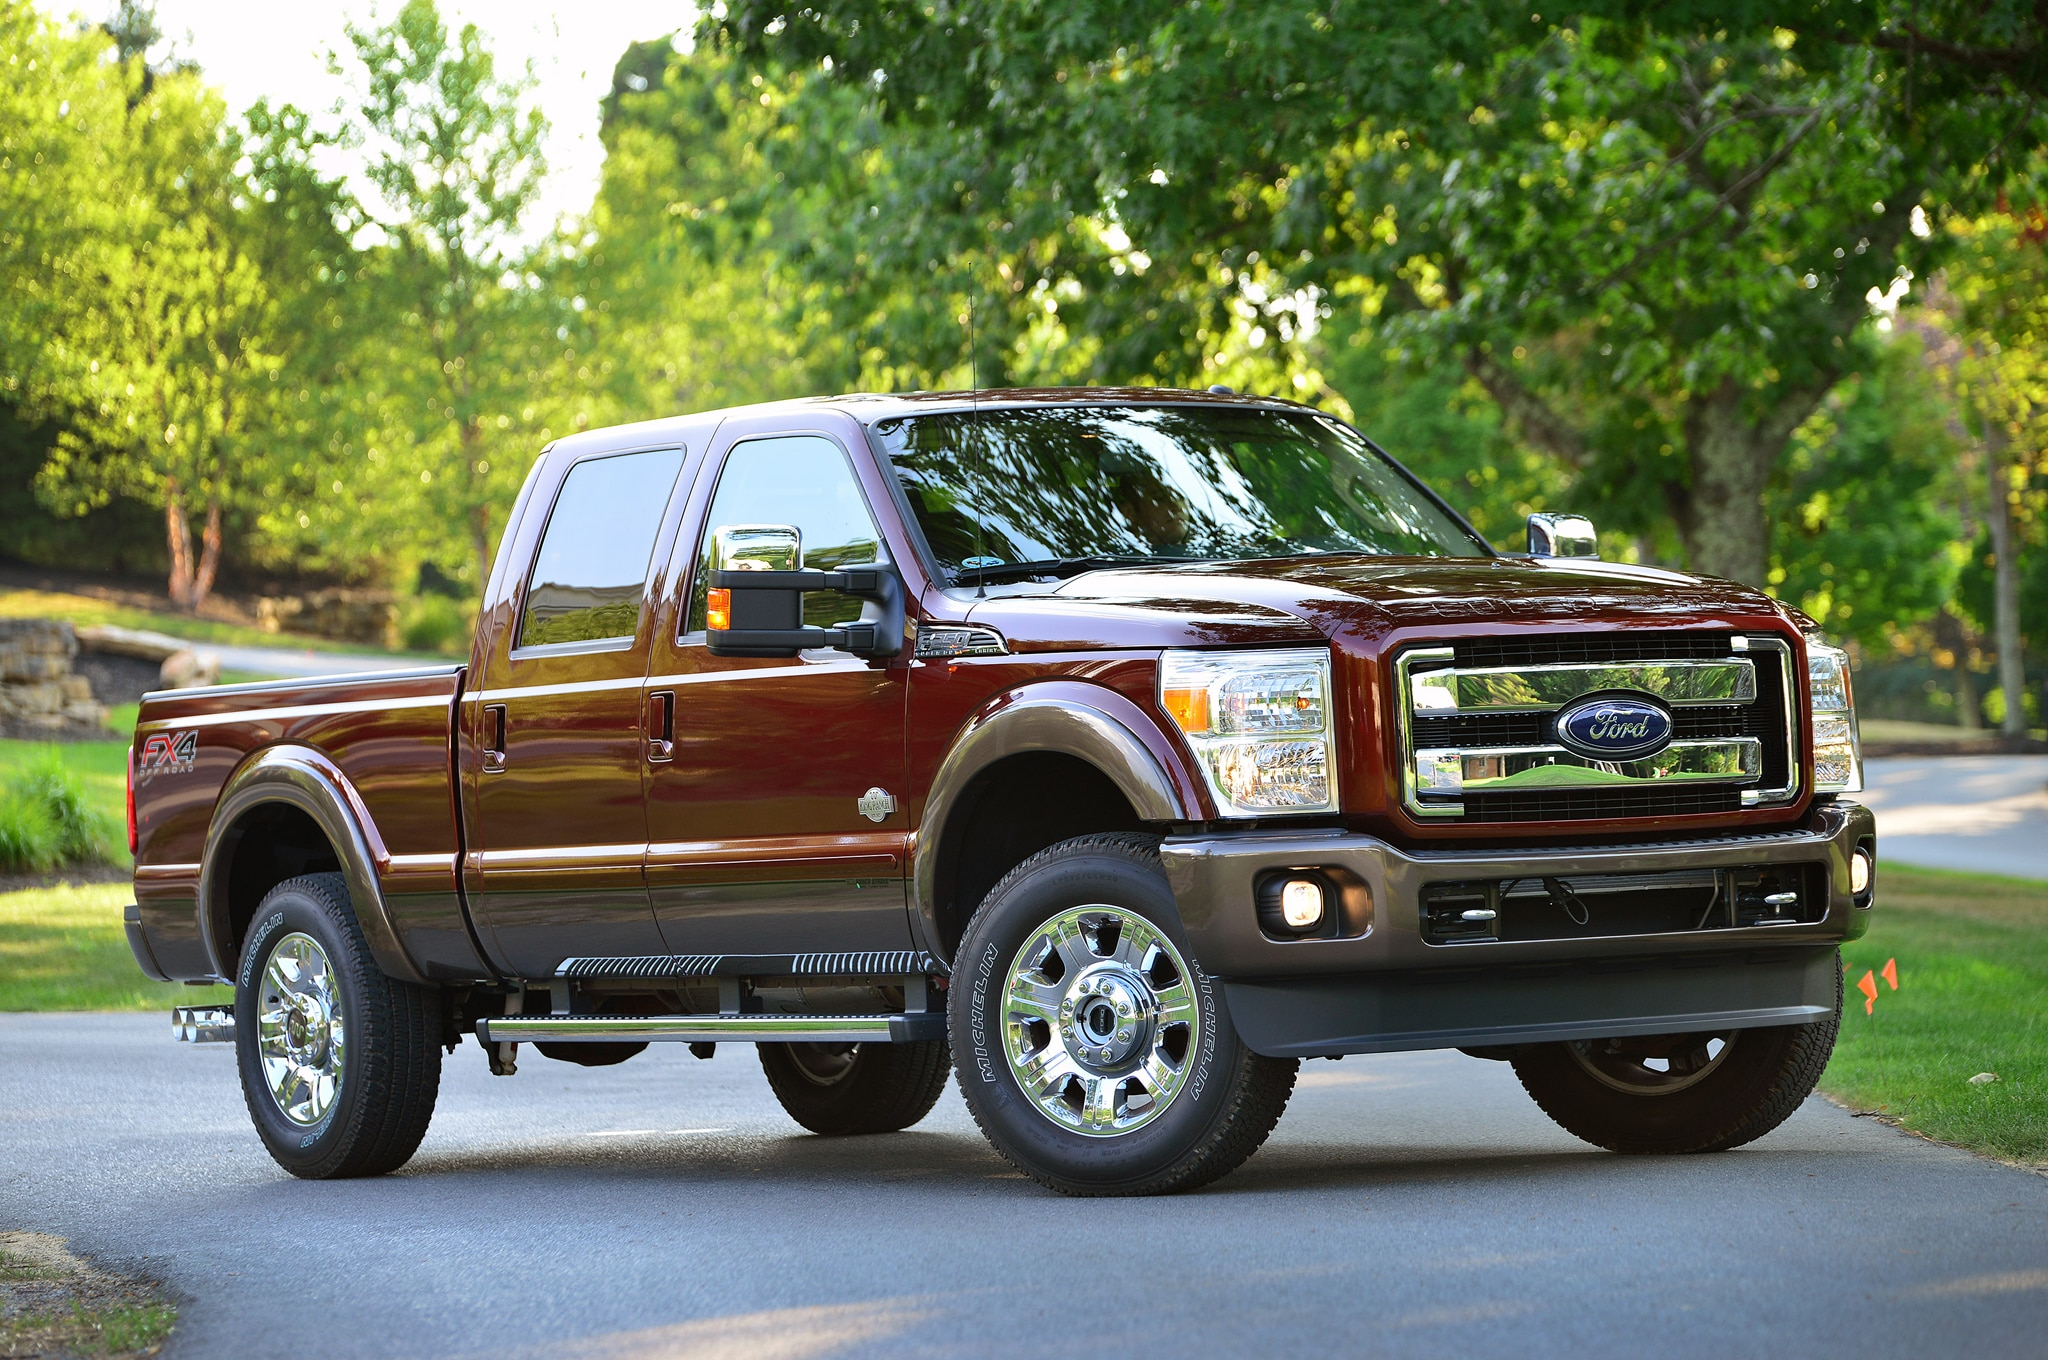 Hennessey VelociRaptor SUV is Spawned from a Ford F 250 Pickup